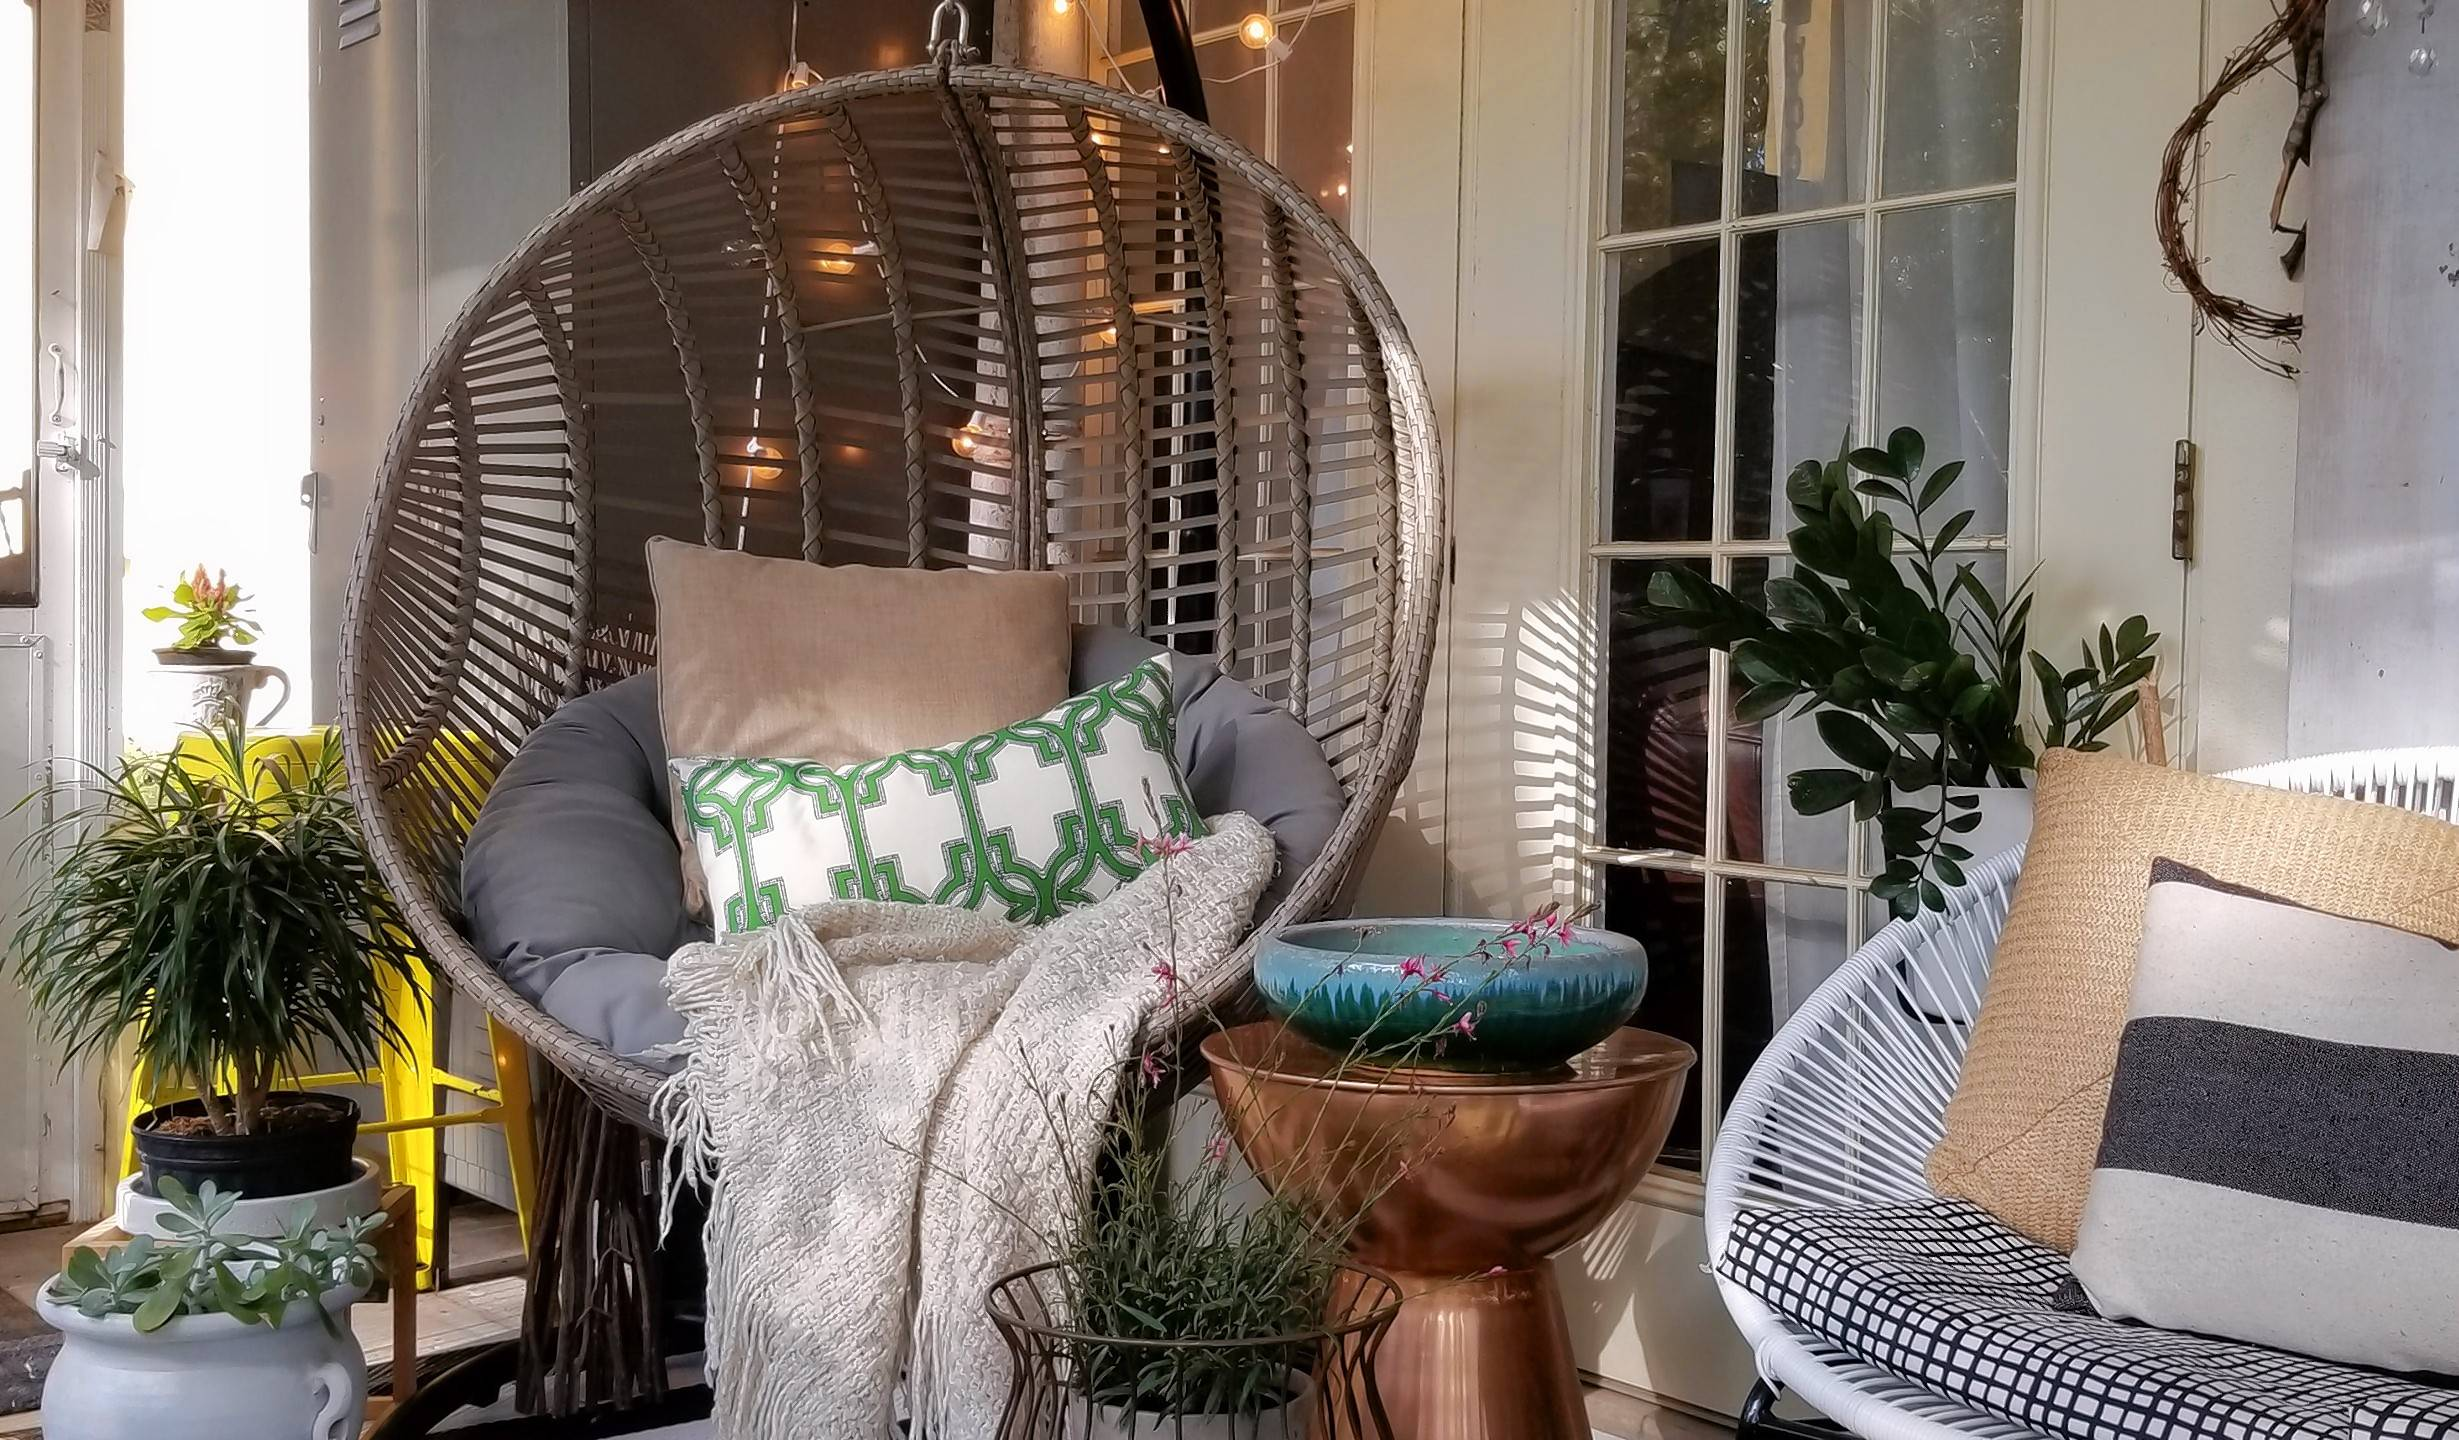 Blogger, decorator and product stylist Holli Rodrigues decorated her patio with a hanging egg chair and shared it on her blog, Bees N' Burlap.